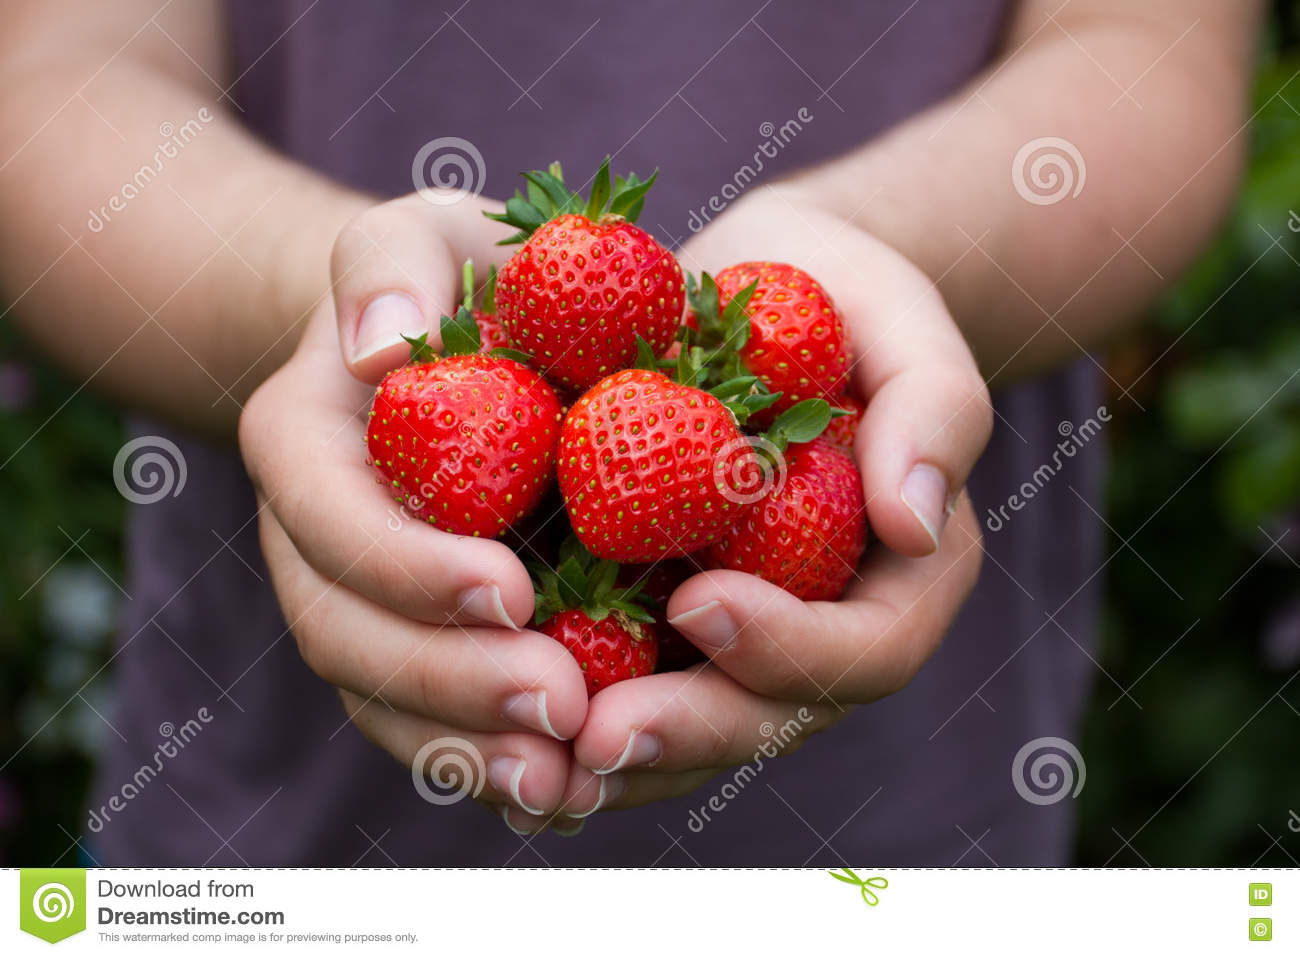 Download Handful Of Ripe Summer Strawberries Stock Photo - Image of strawberry, hands: 74550198